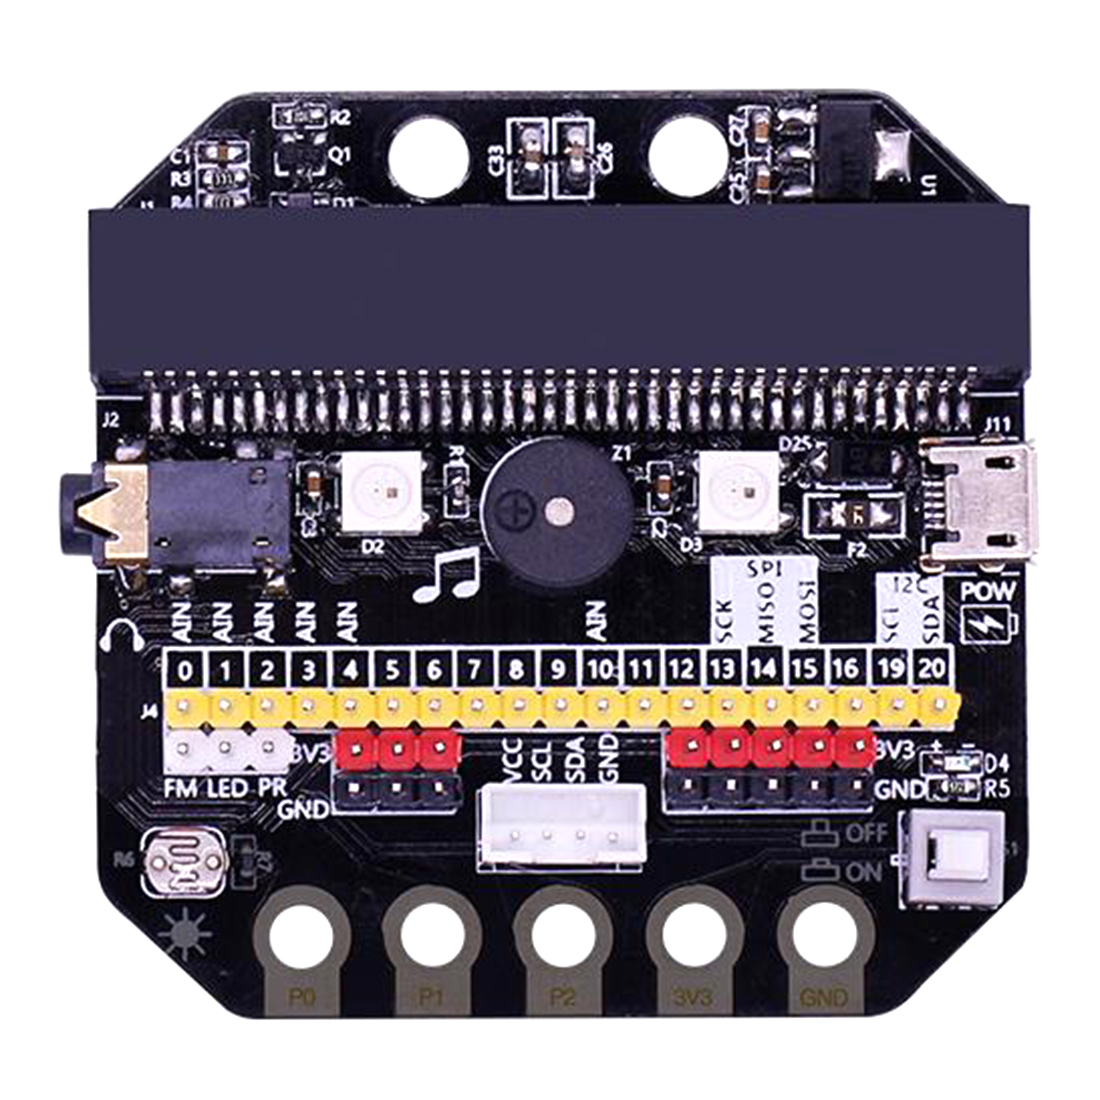 Basic:Bit IO Expansion Board Horizontal Type Pinboard Microbit Python Development Board For Micro:Bit For Children Education Toy